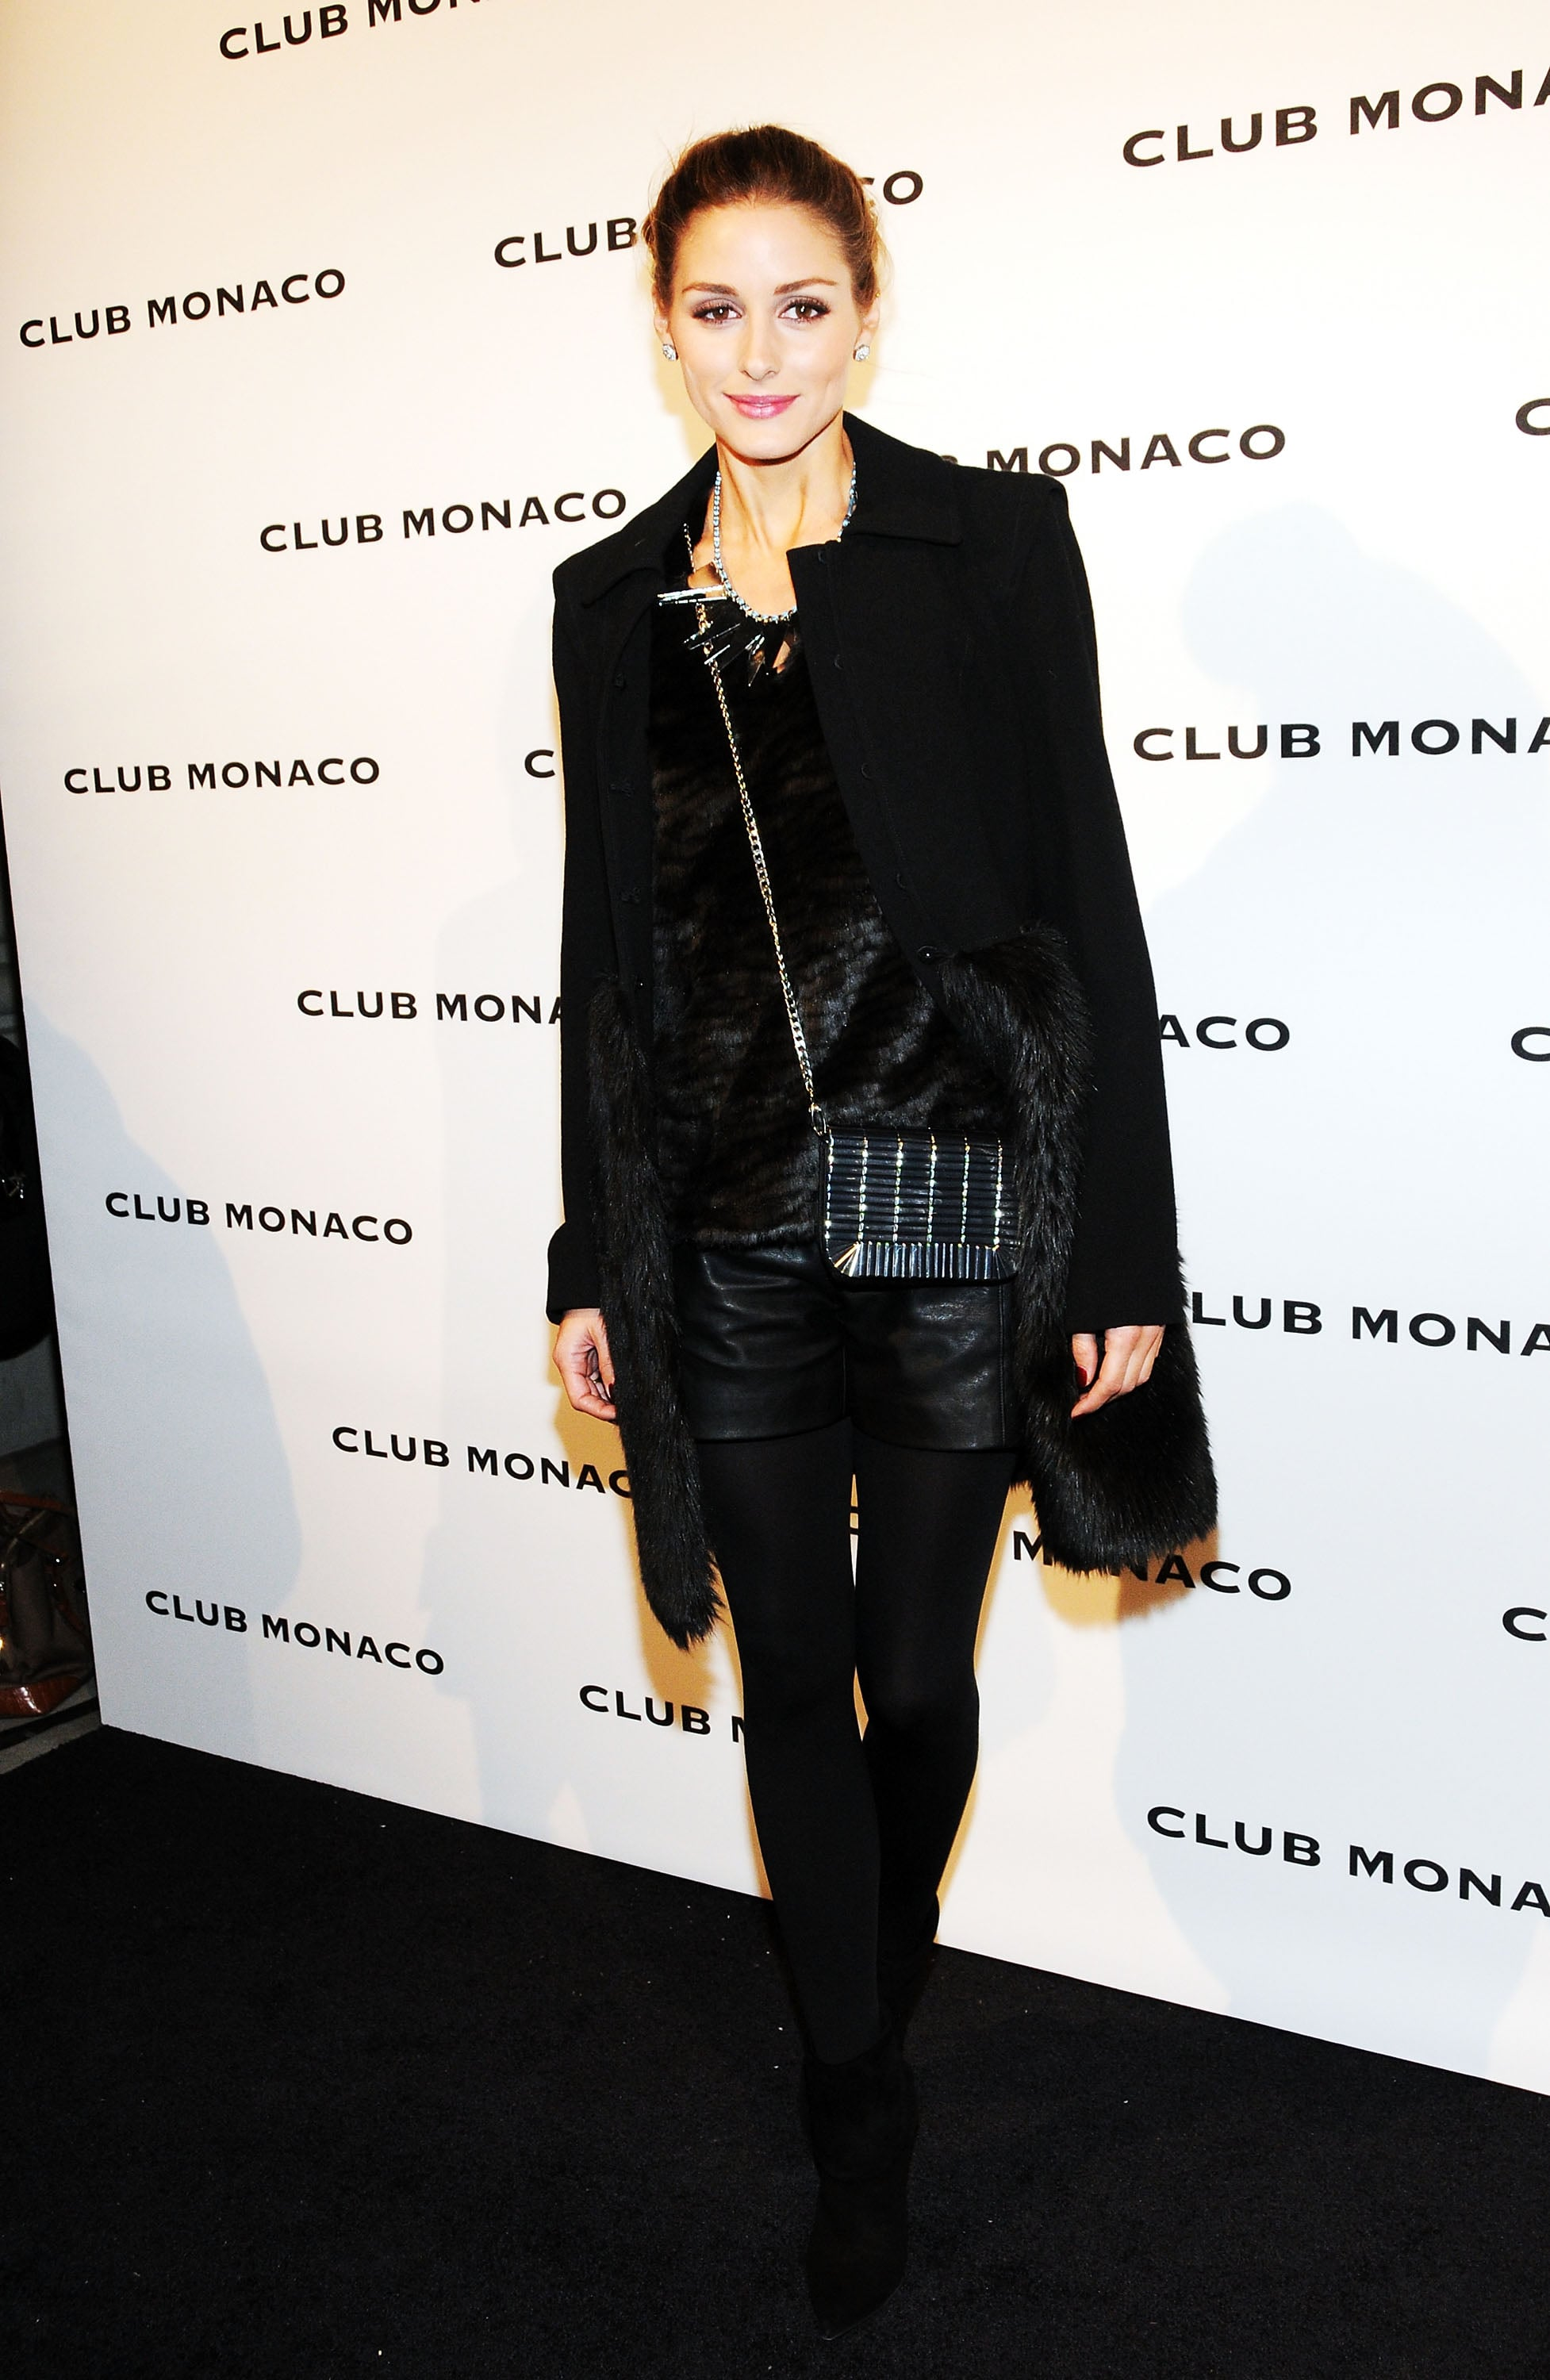 While celebrating Club Monaco's store opening, Olivia opted for cool, all-black layers.